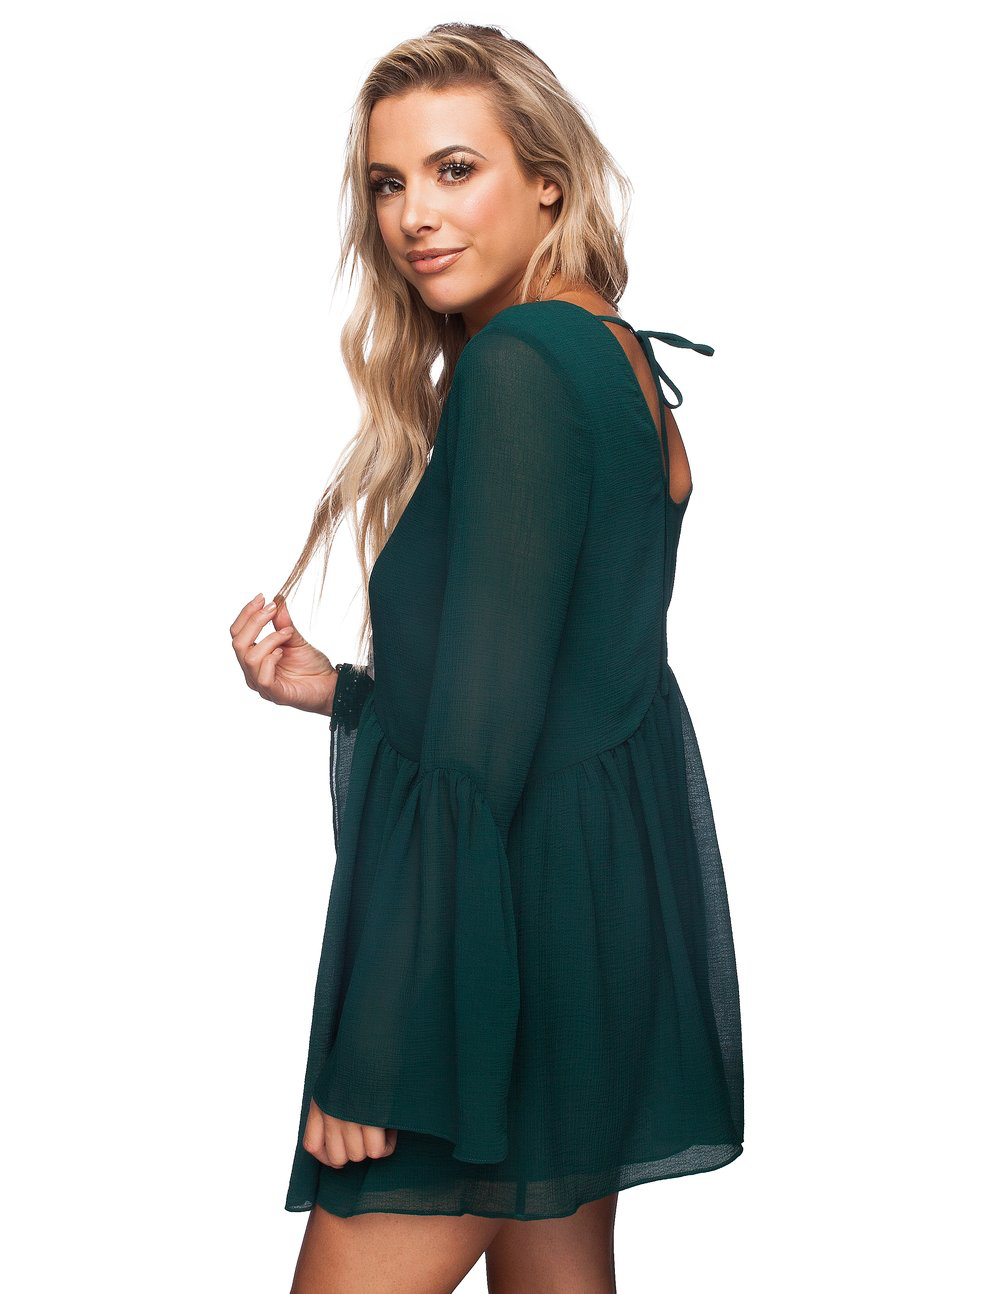 Hall Dress in Emerald